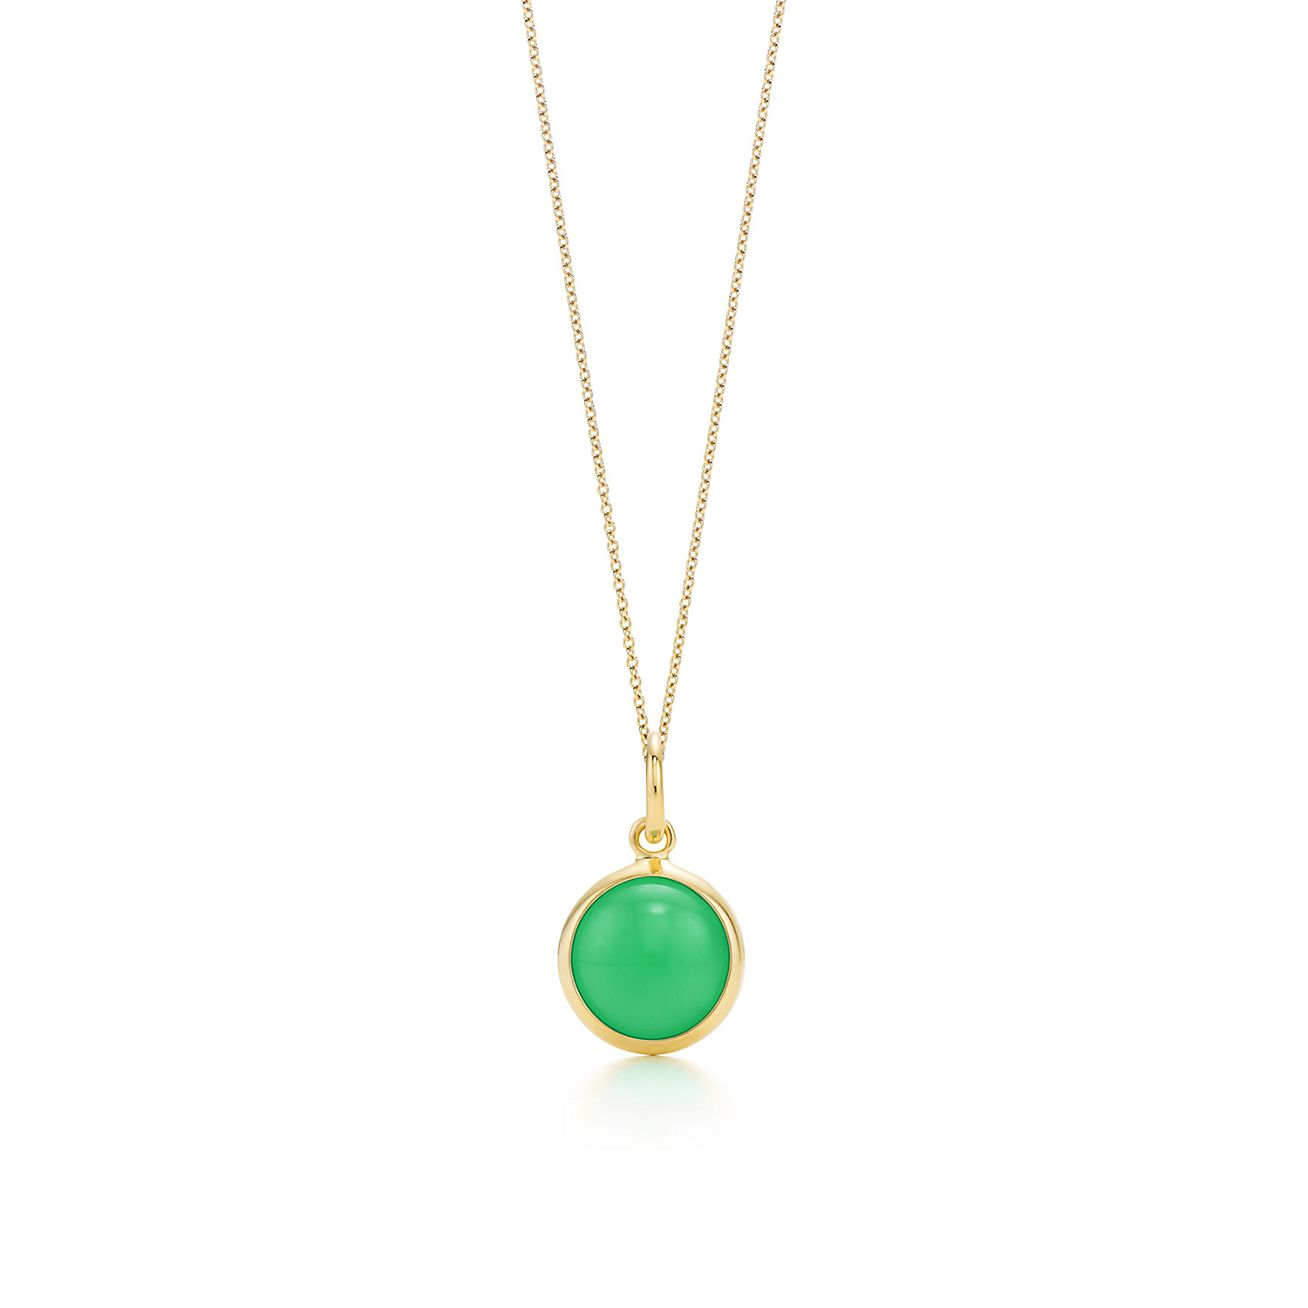 kathryn rebecca products web necklace chrysoprase for